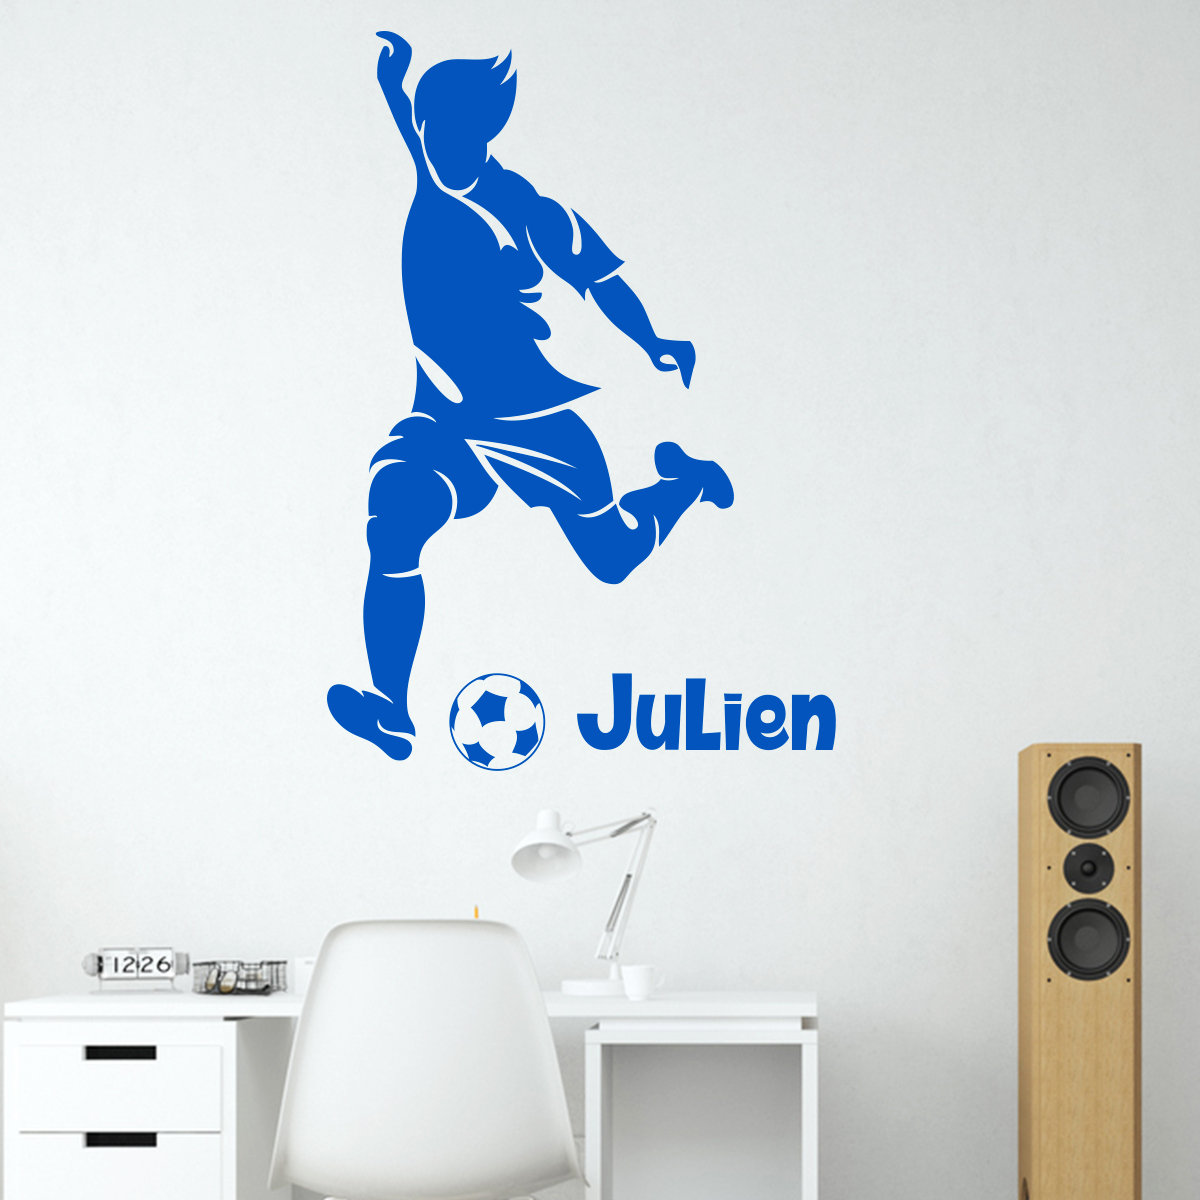 sticker pr nom personnalis footballeur avec la balle sports et football football ambiance. Black Bedroom Furniture Sets. Home Design Ideas